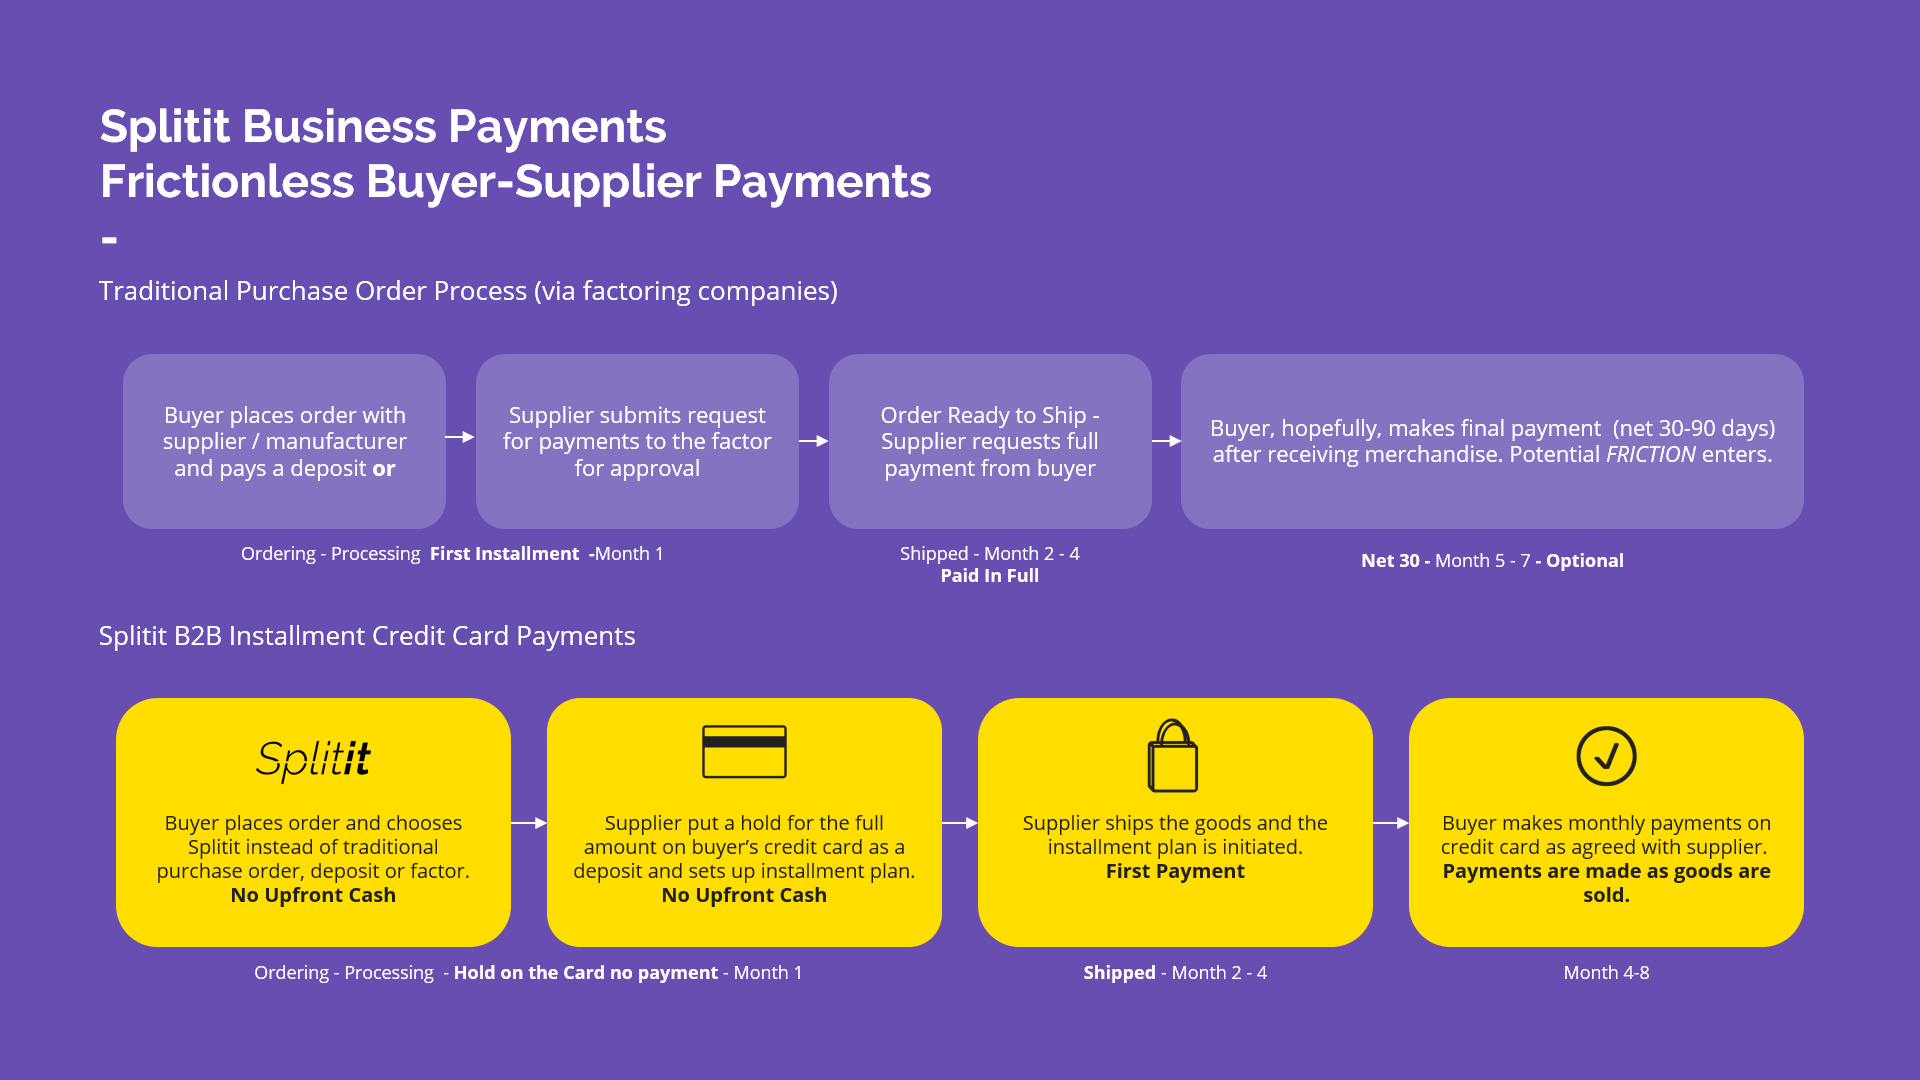 Splitit's new Business Payments solution provides numerous benefits for both buyers and sellers.